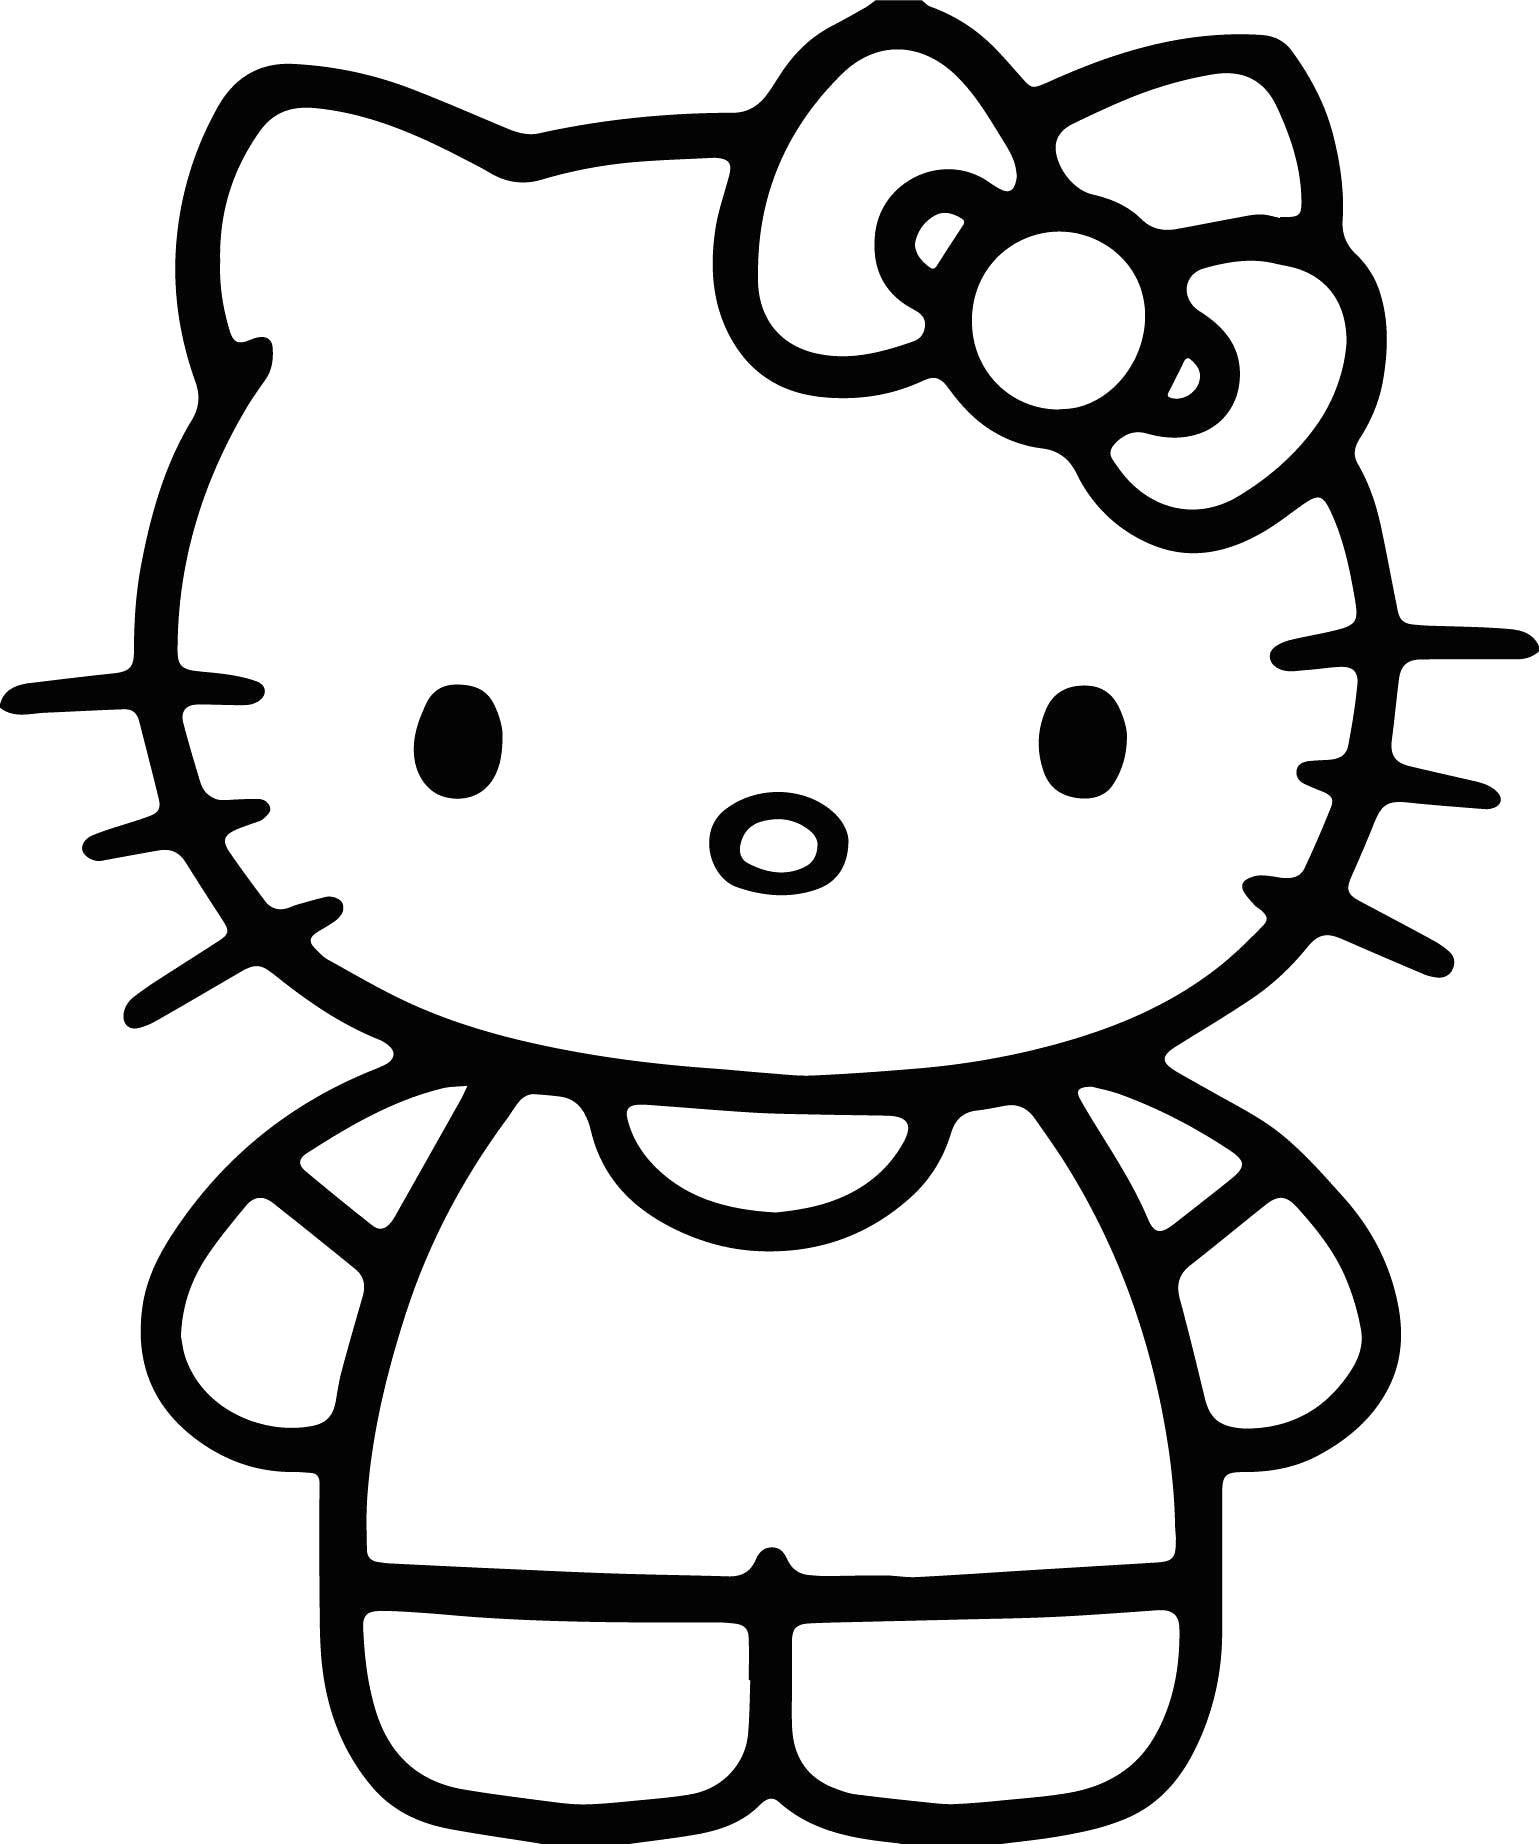 Printable Coloring Pages for 3 Year Olds Coloring Pages for 3 Year Olds